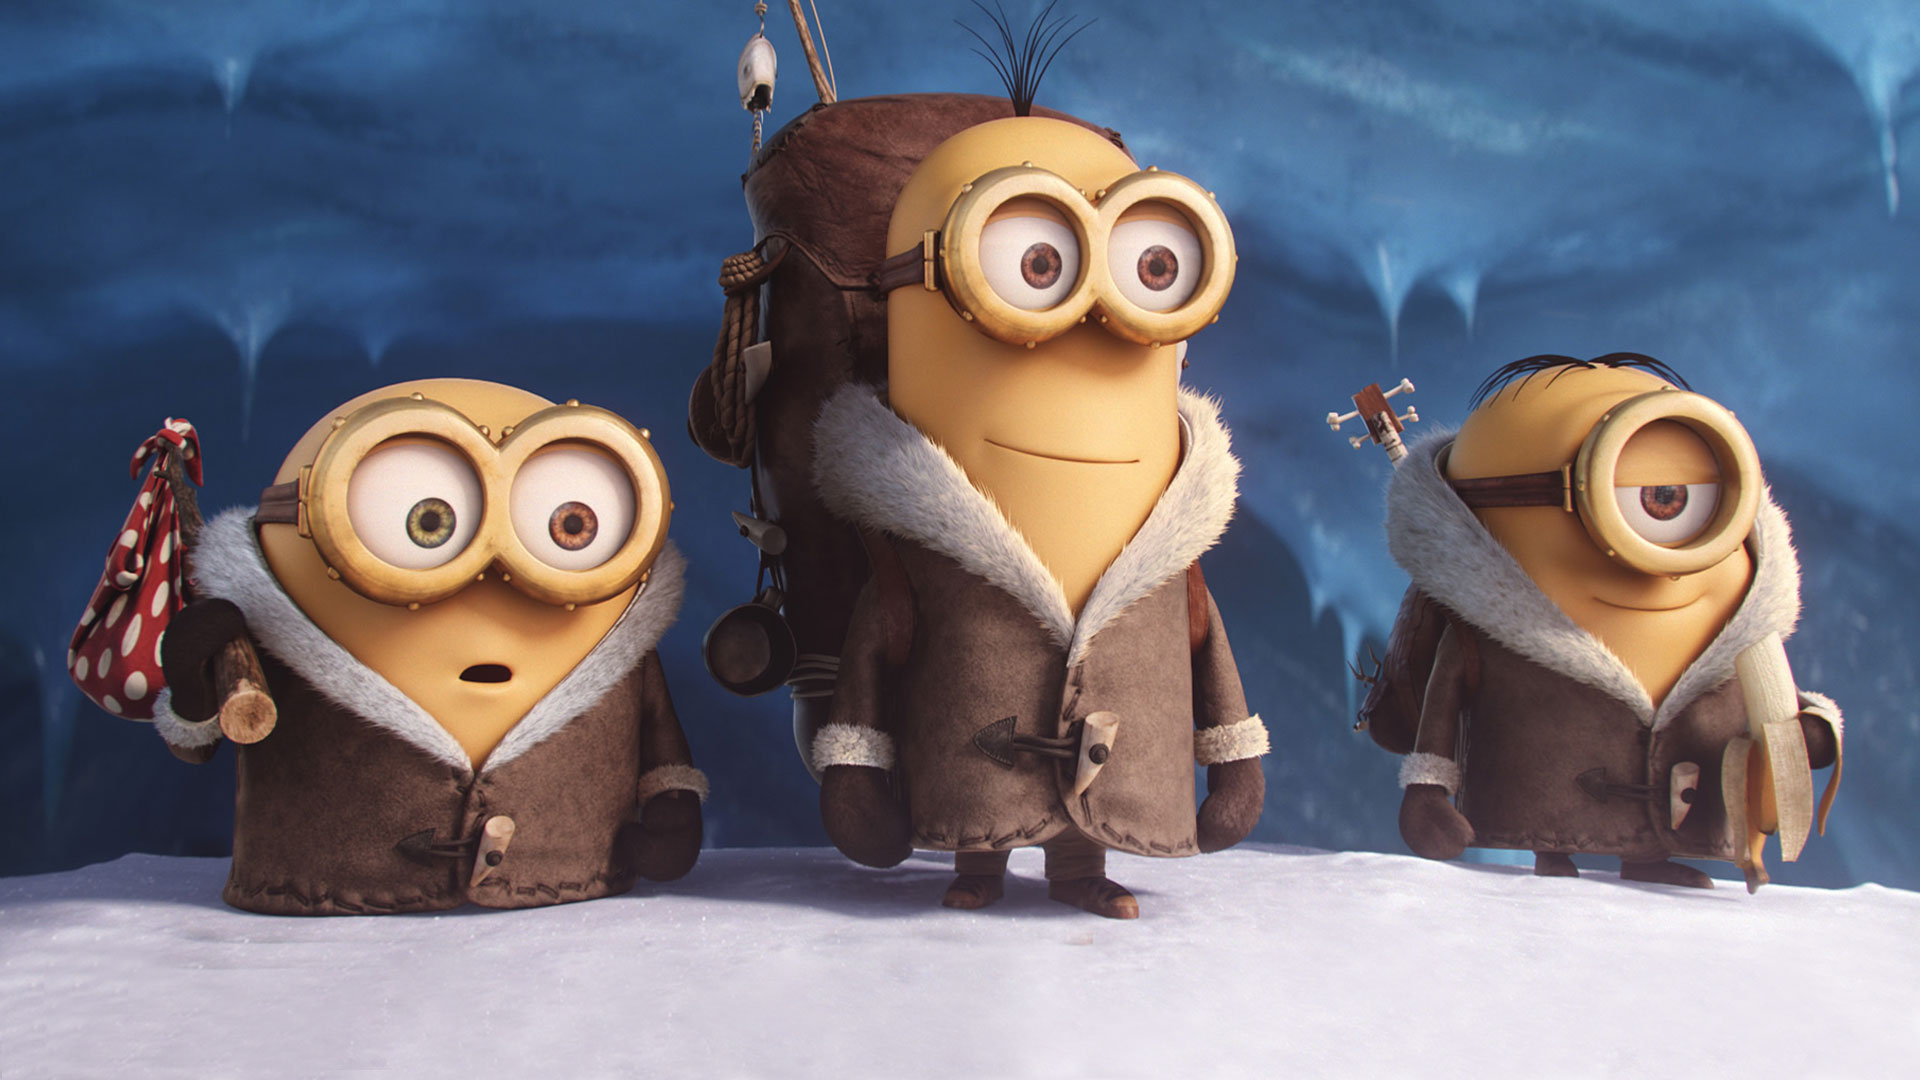 A-Cute-Collection-Of-Minions-Movie-Desktop-Backgrounds-wallpaper-wpc9001939